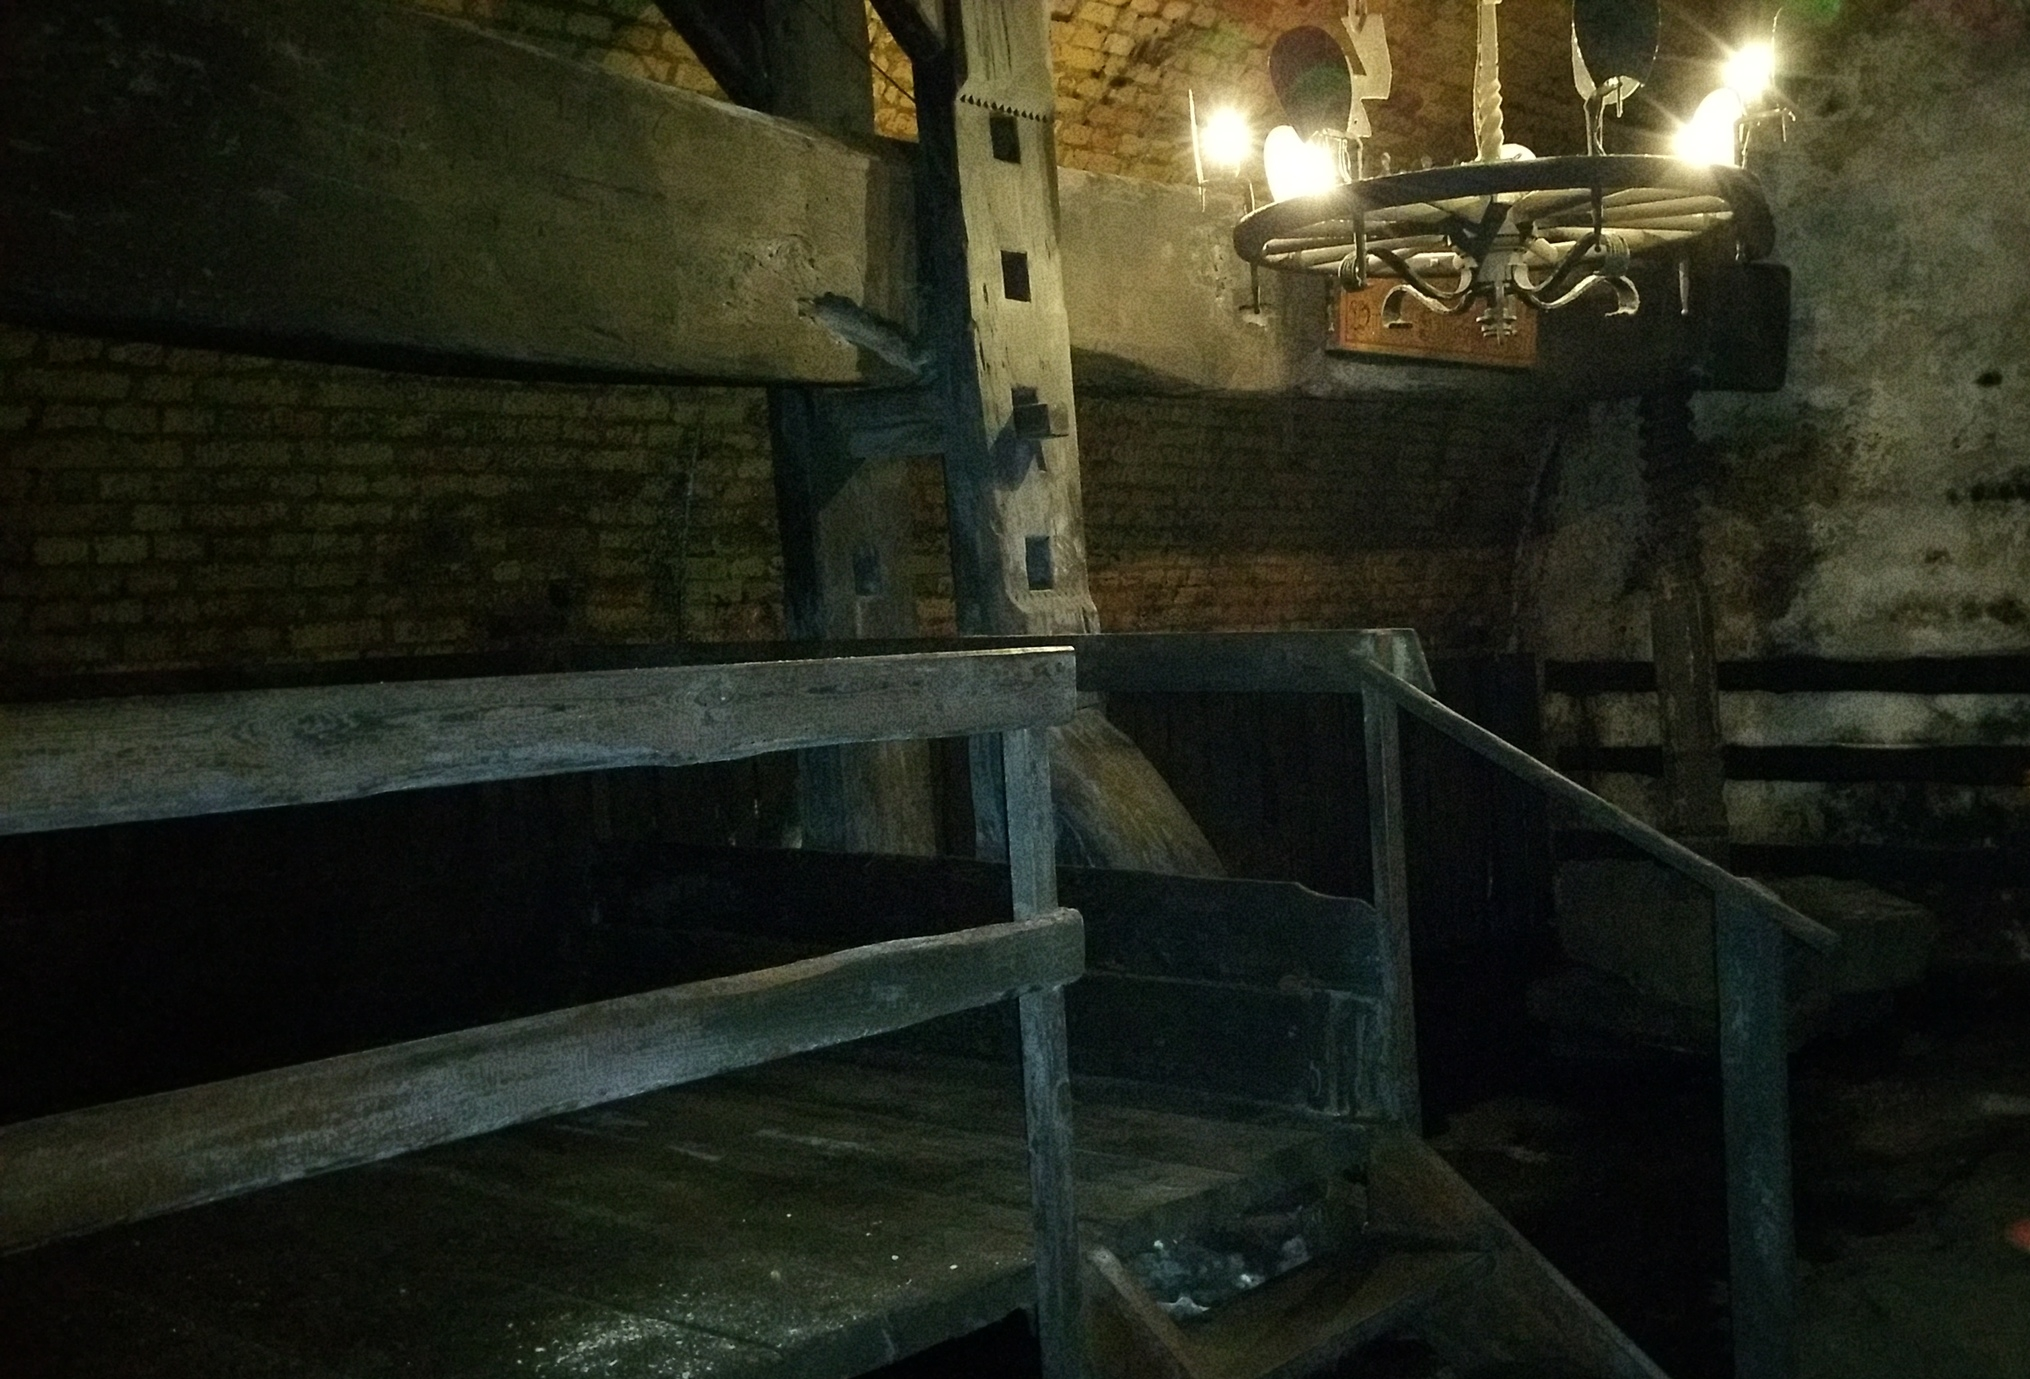 One of the largest and oldest wine presses in Europe. 500 years old, made out of 500 year old oak = 1000 year old oak tree!